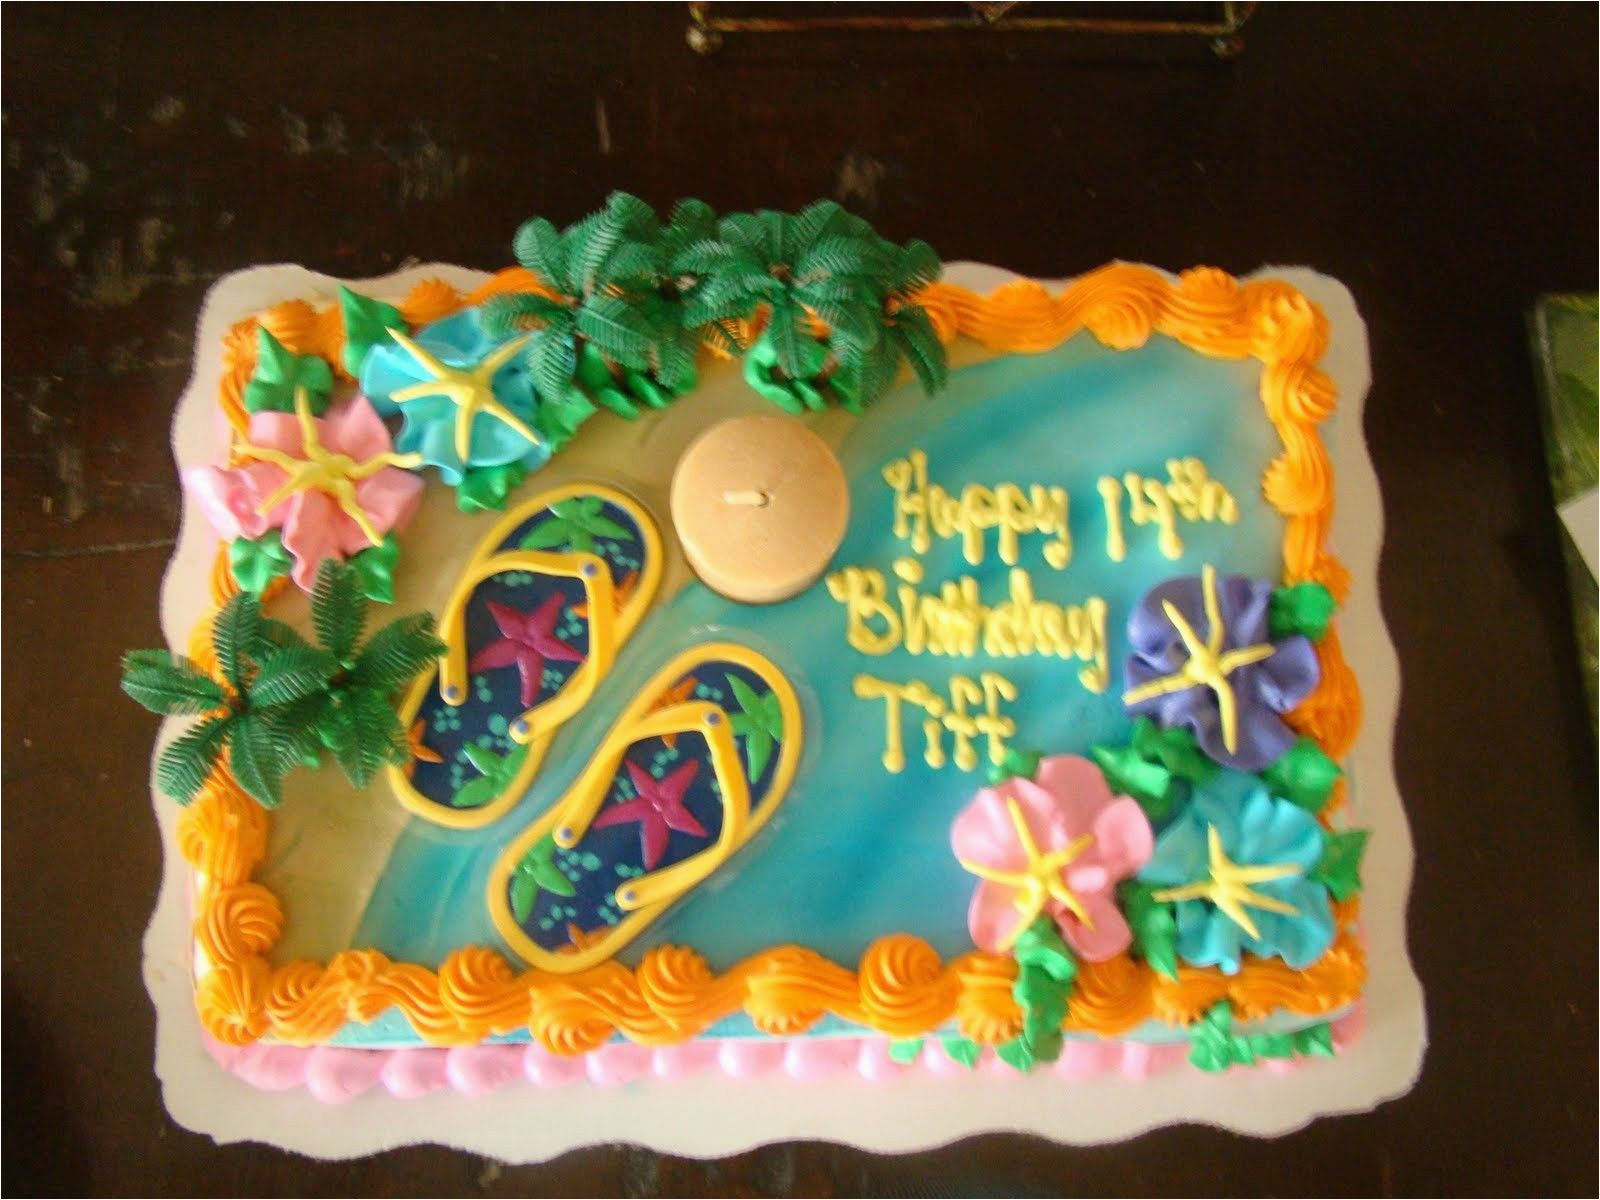 Decorated Birthday Cakes At Walmart Luau Holiday Ideas